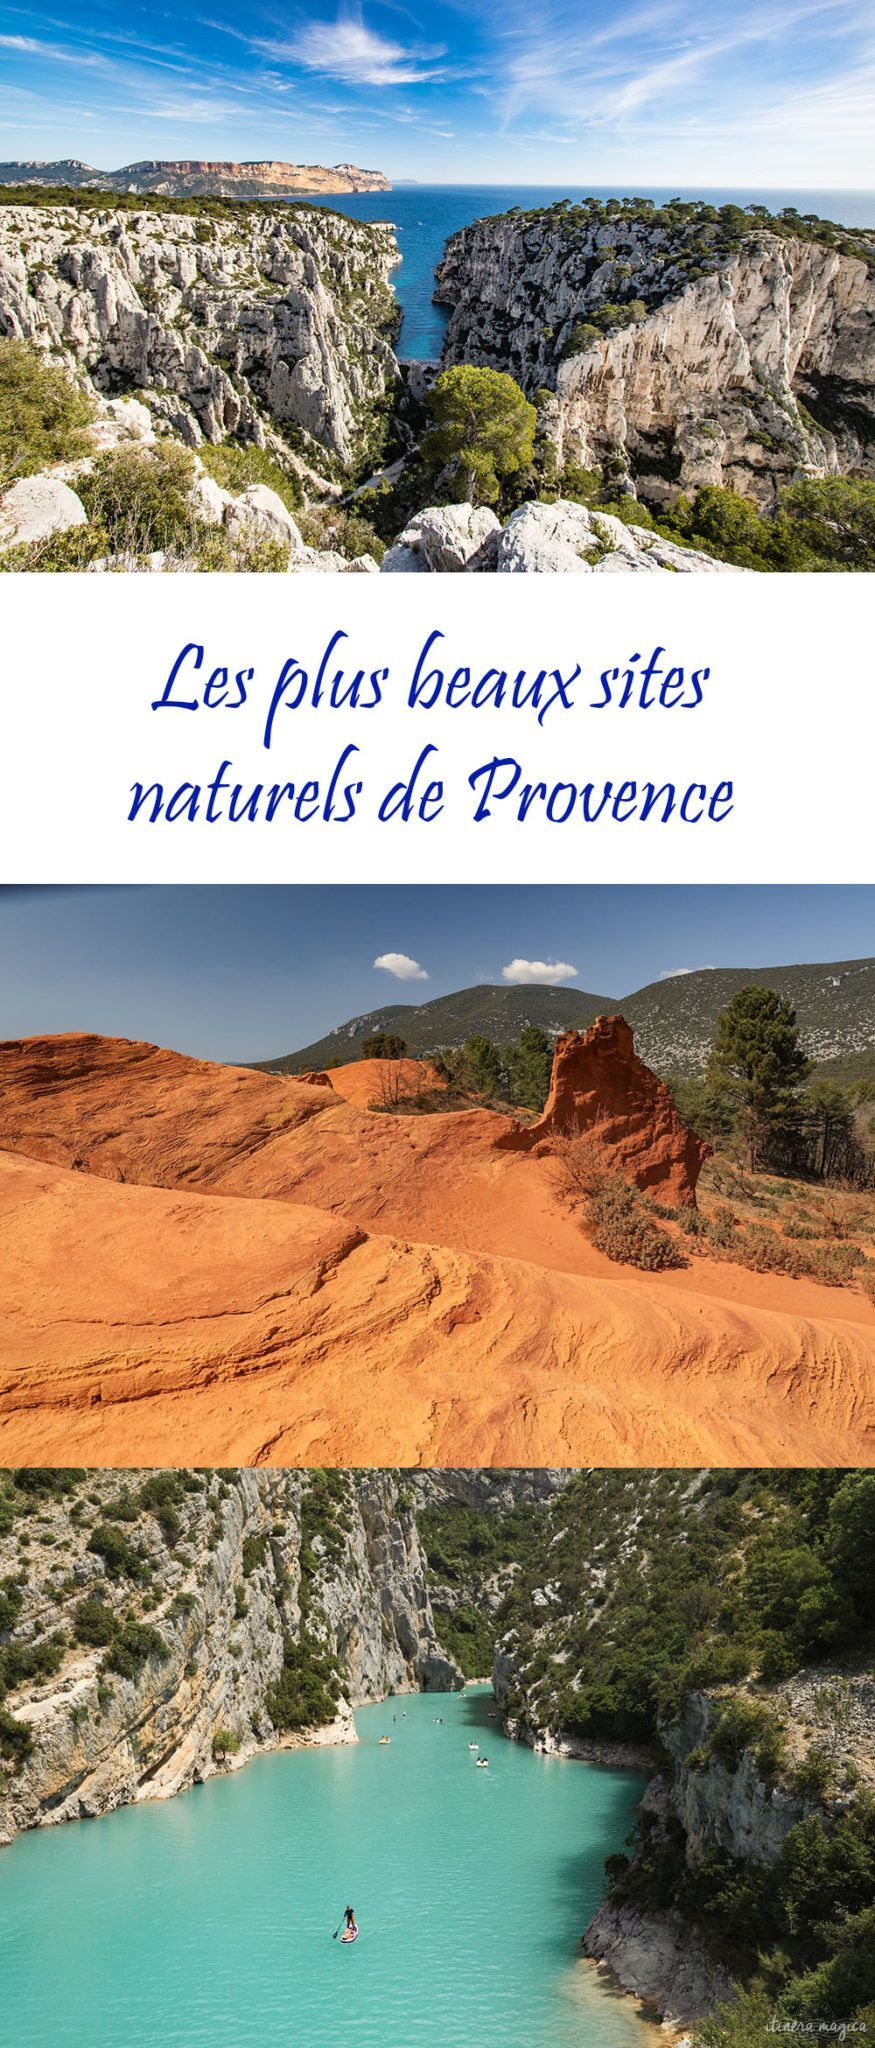 Les Plus Beaux Sites Naturels De France : beaux, sites, naturels, france, Trips, France, France,, Travel,, Camping, Provence